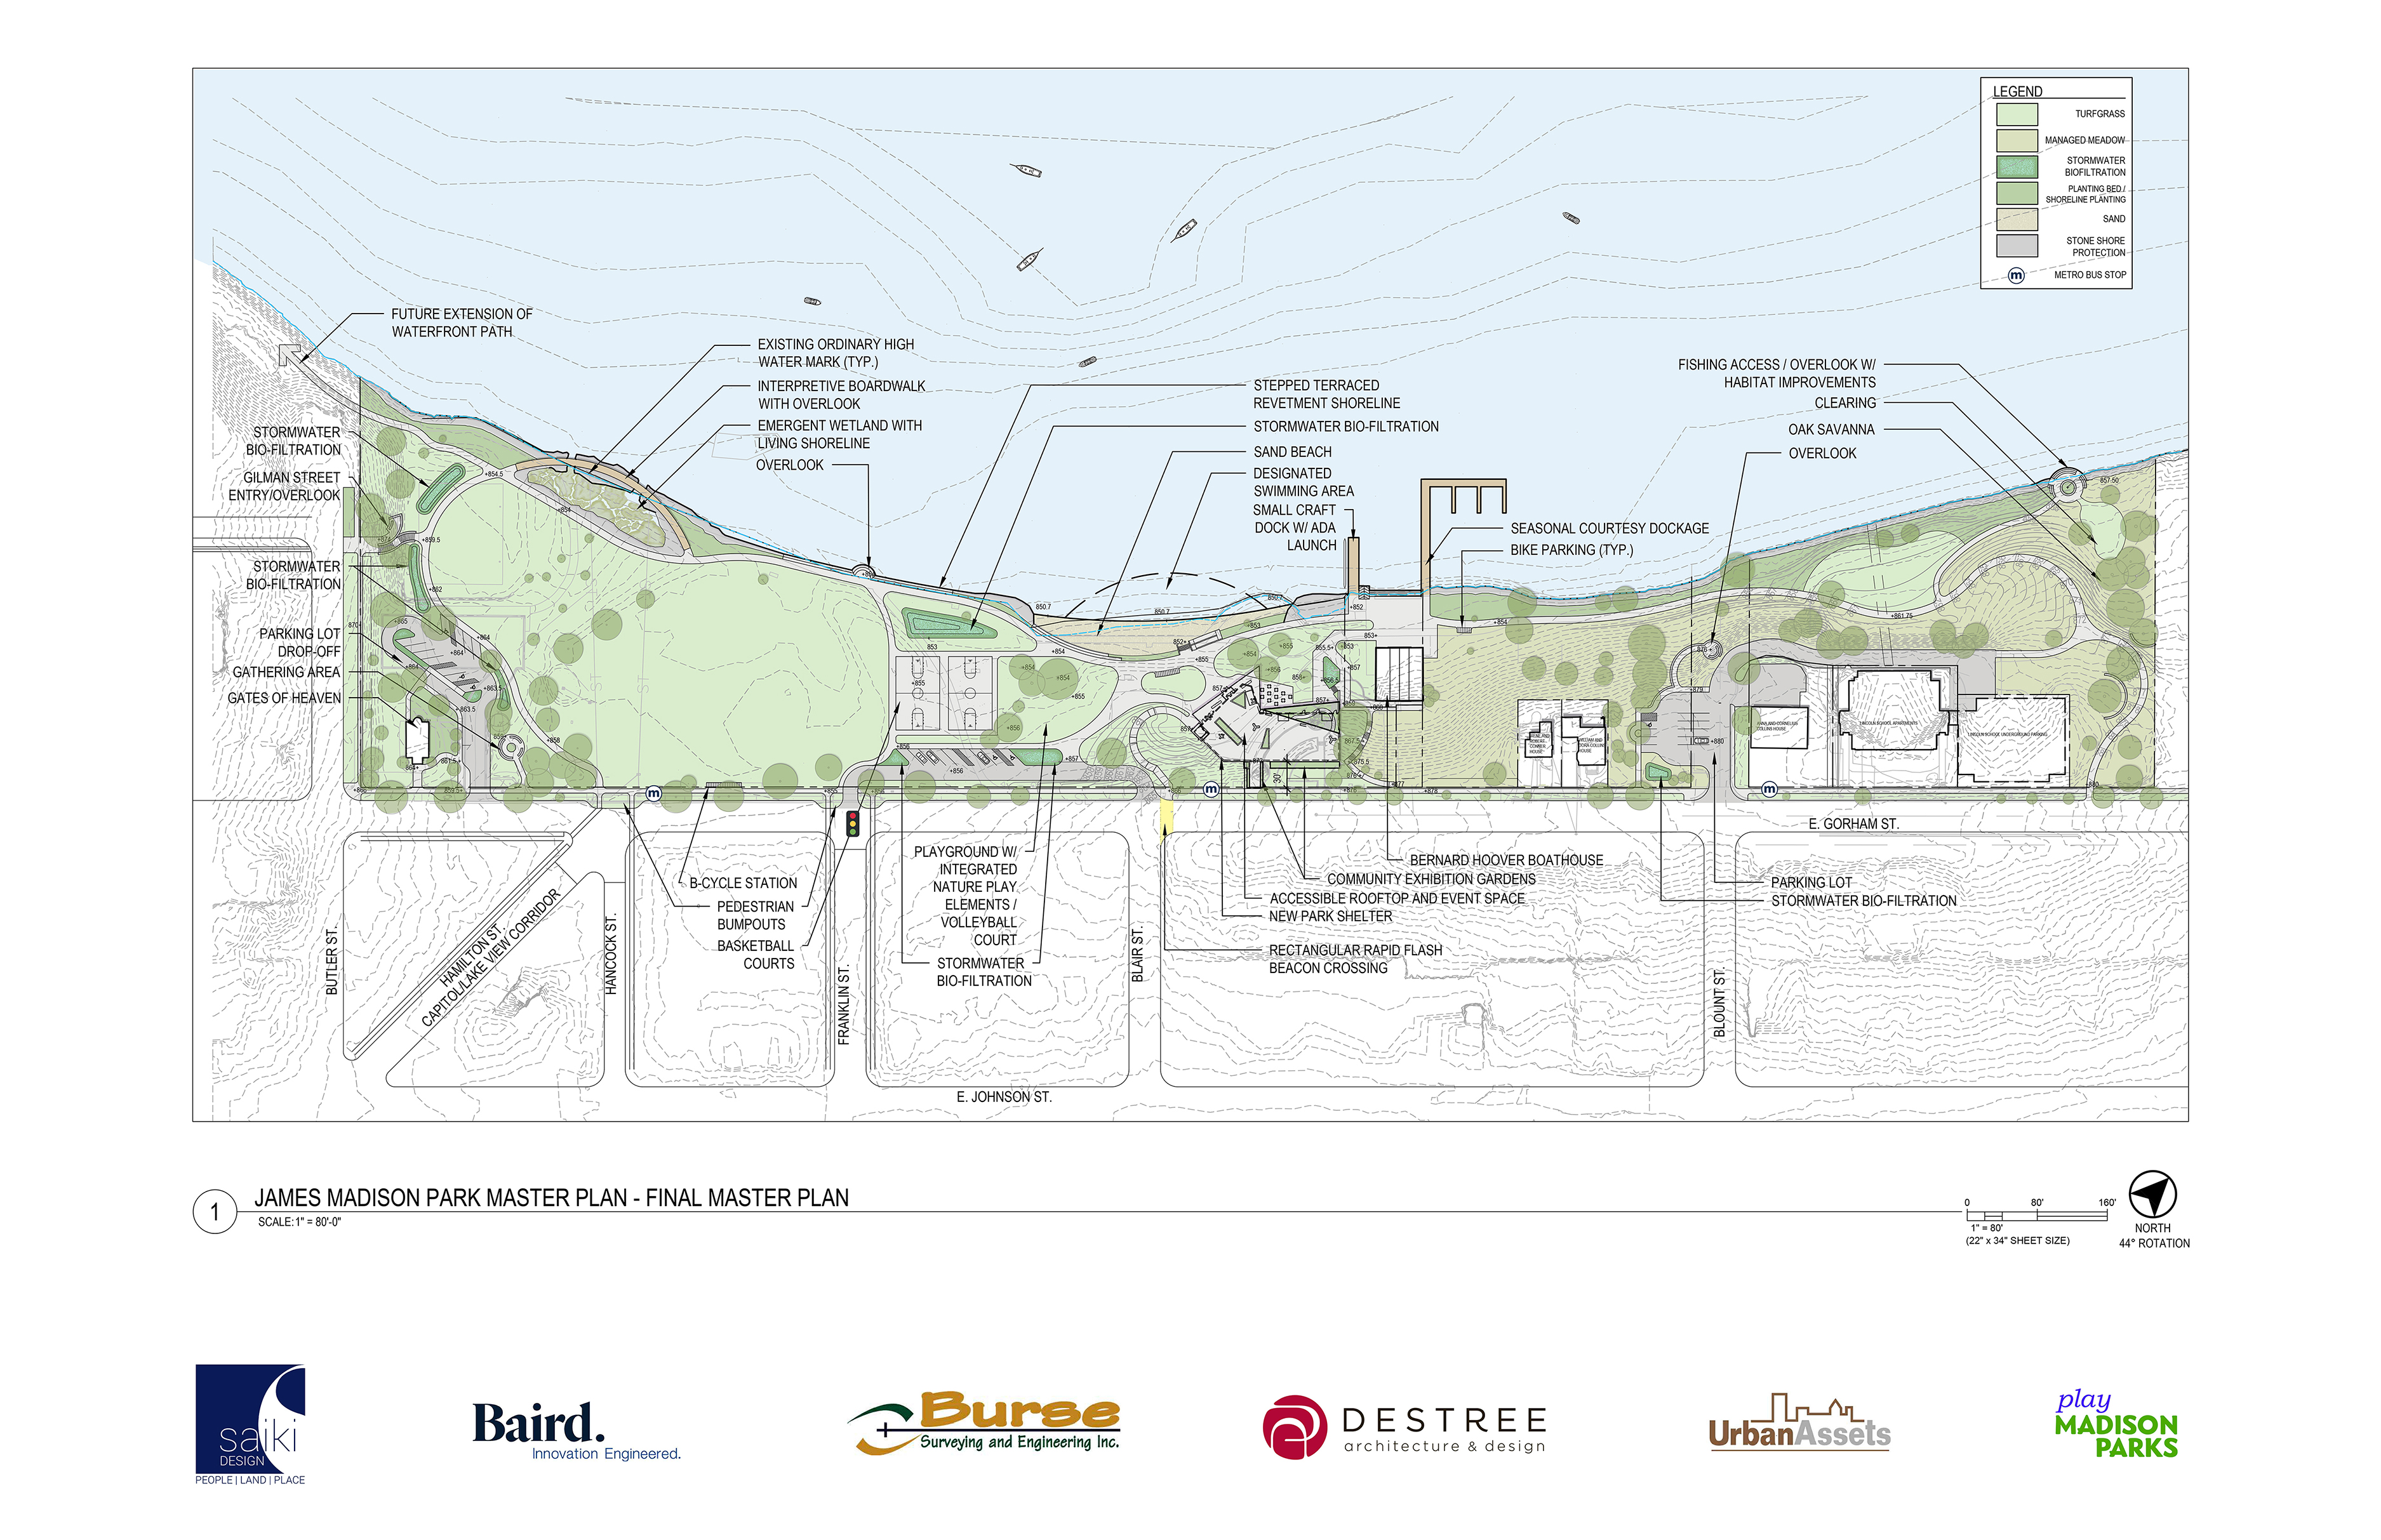 Located in the heart of the Isthmus, James Madison Park provides a destination for downtown residents and visitors alike. Its shoreline access to Lake Mendota is nearly unparalleled and it offers spectacular view and a peaceful atmosphere amid the vibrant downtown hustle and bustle.